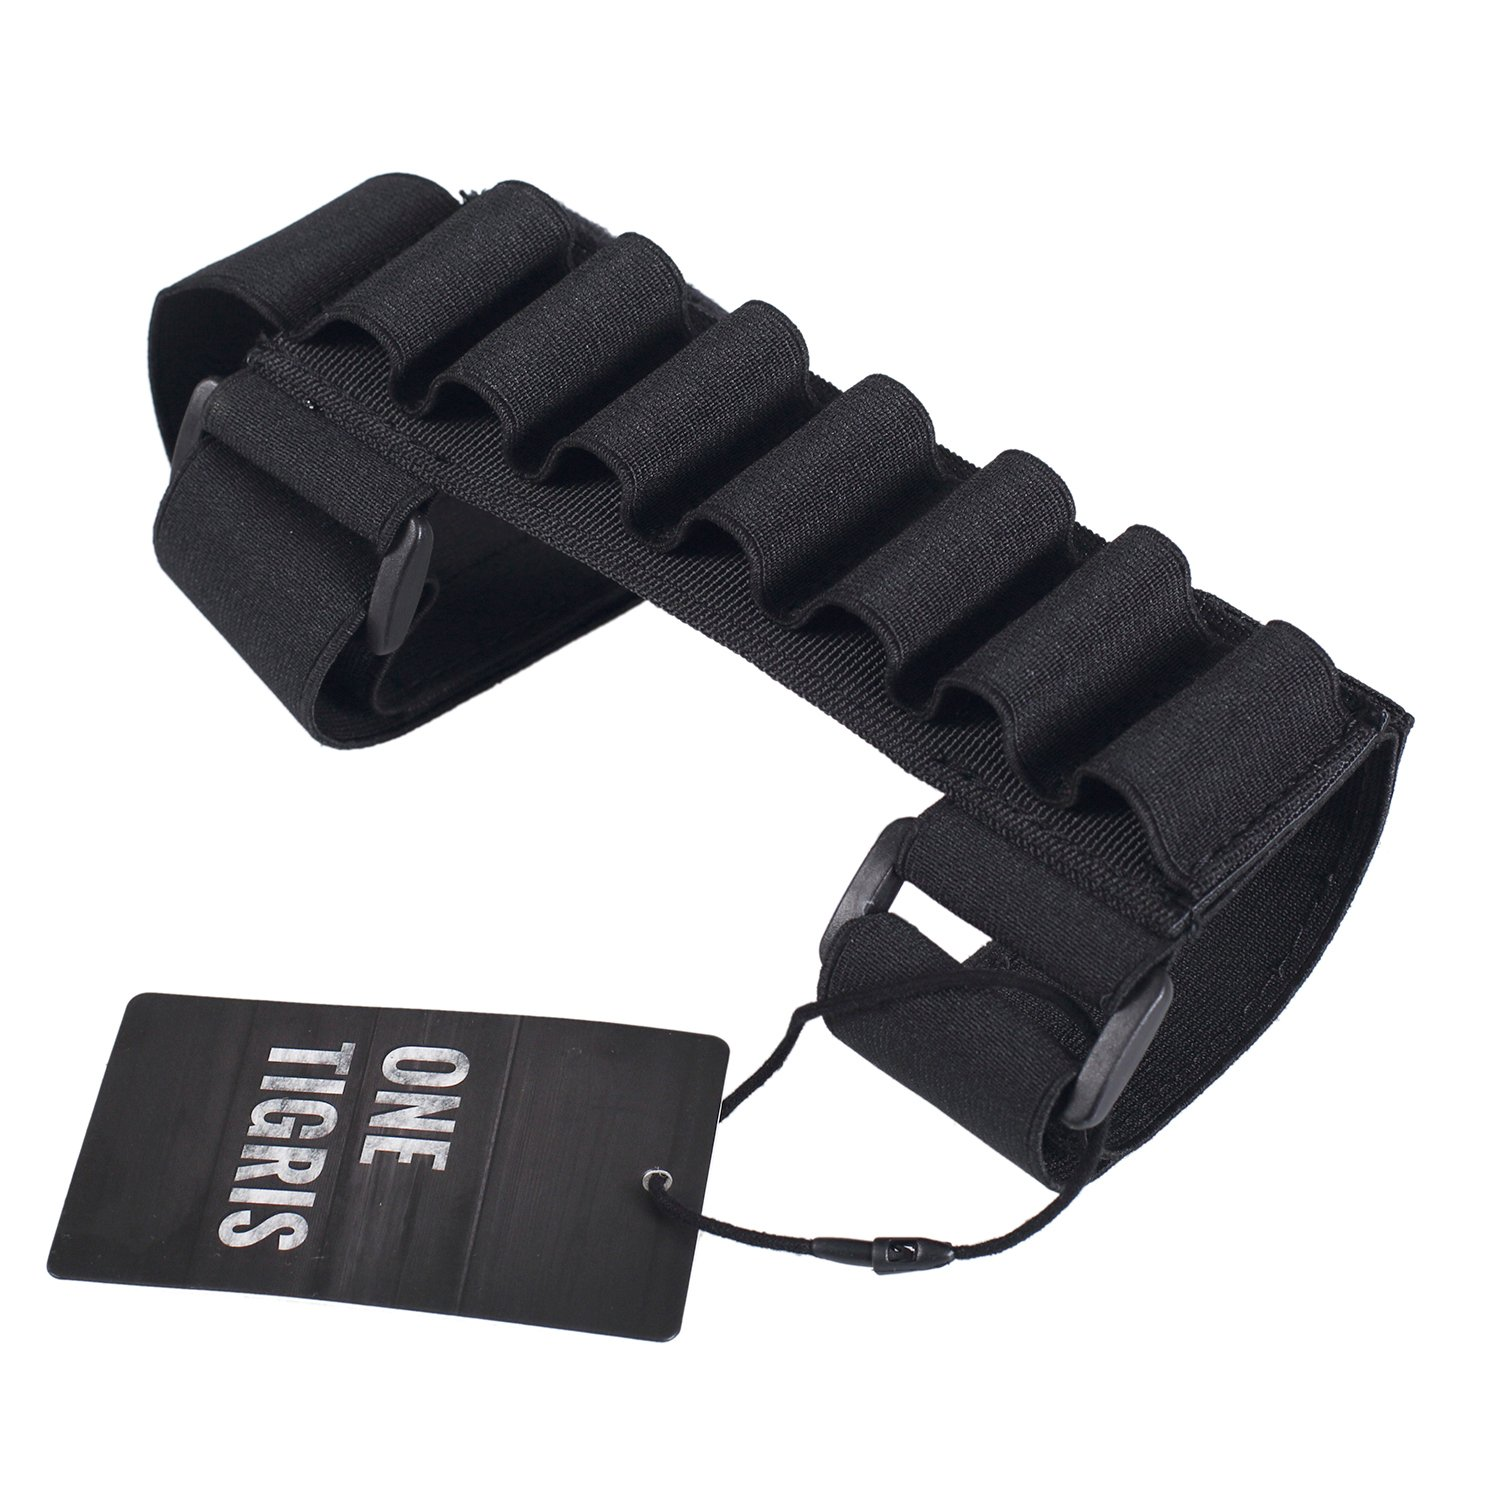 OneTigris 1000D 7 Round Tactical Shotgun Stock Shell Holder Ammo Carrier Hunting Pouch Strip (Black)